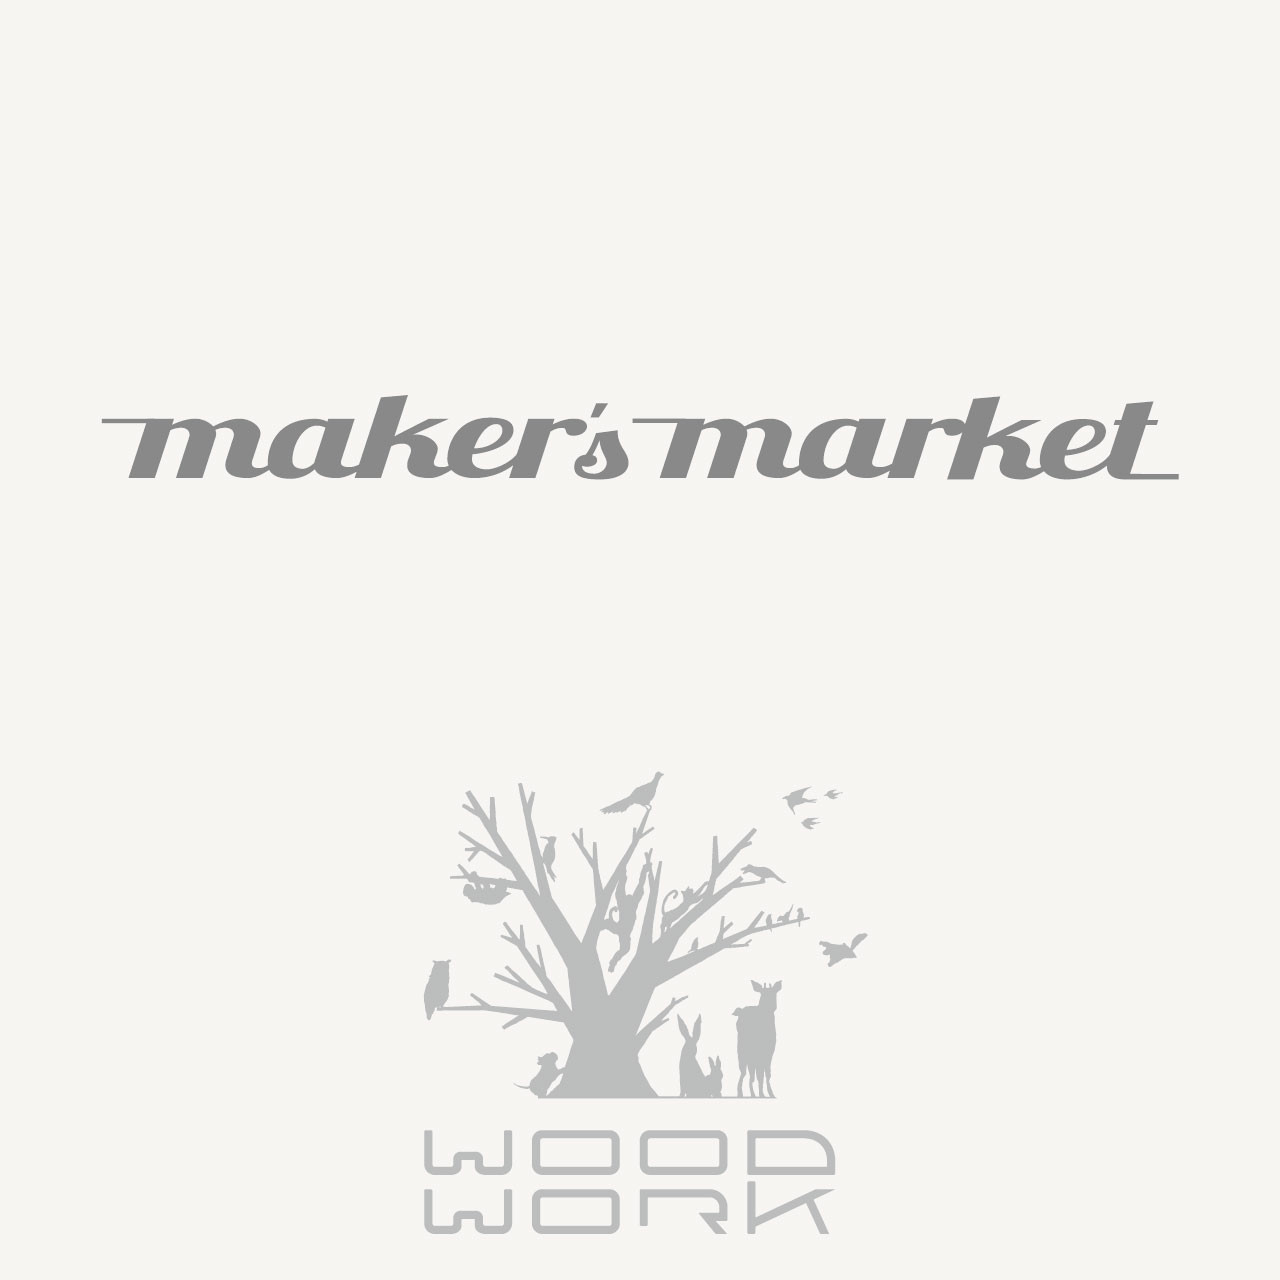 WOODWORK maker's market